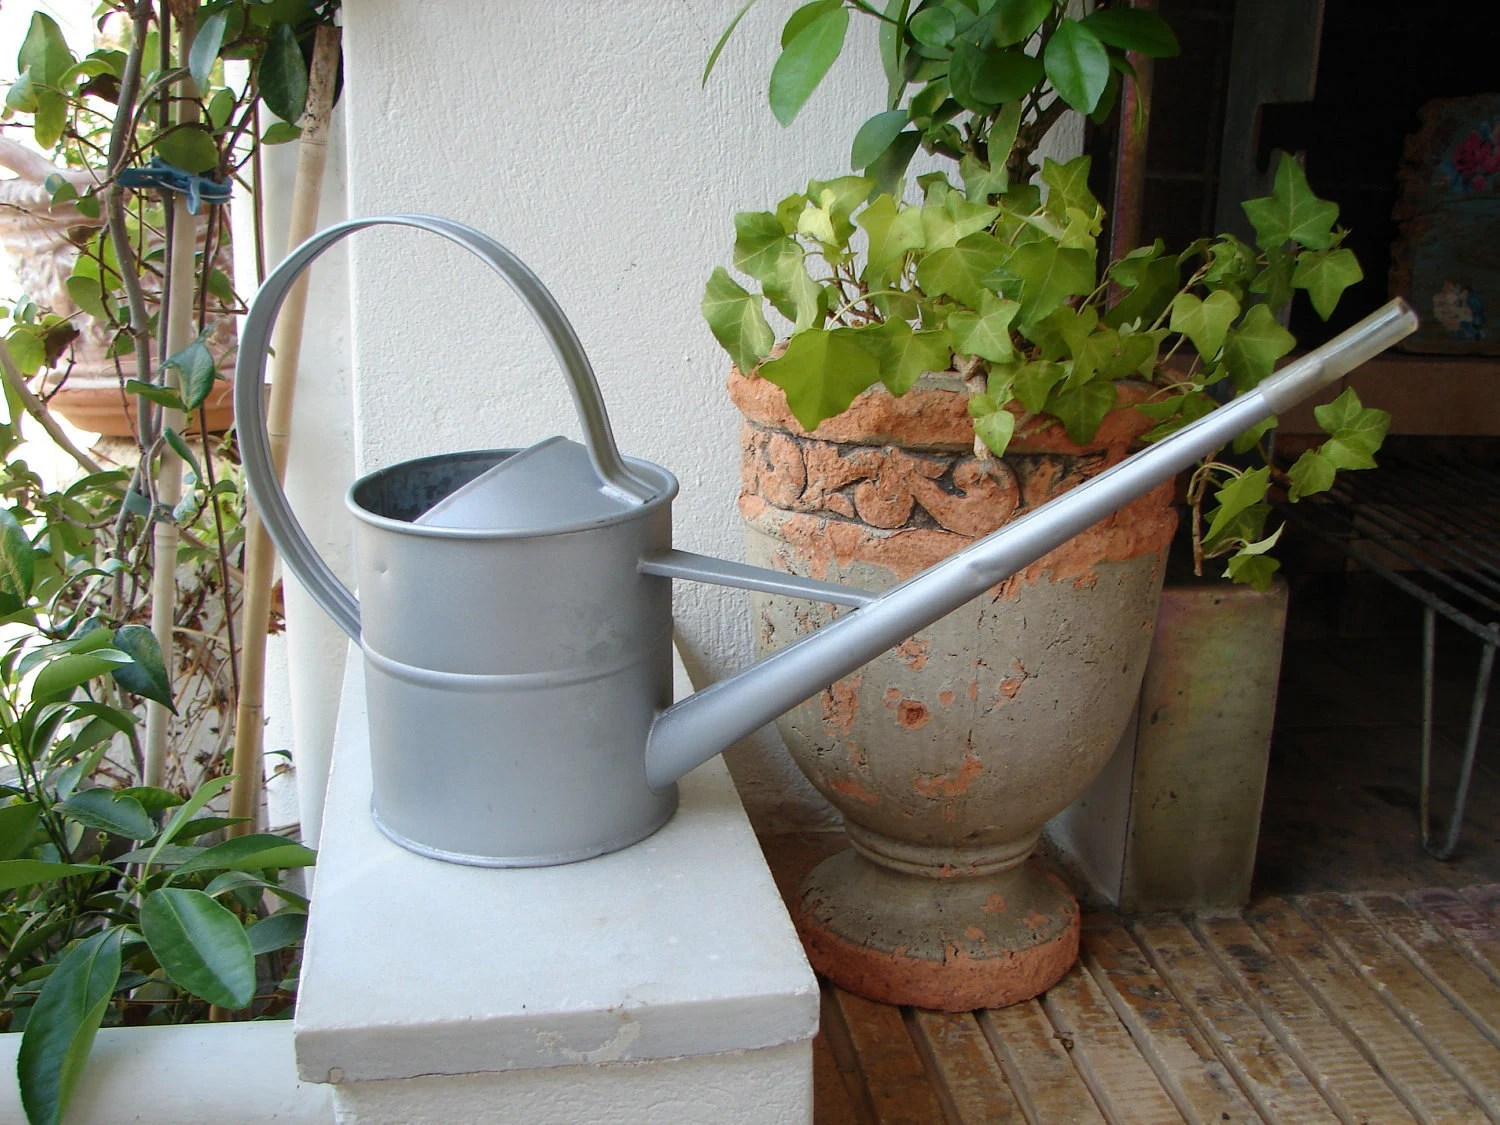 Watering Cans With Long Spouts Vintagelong Spout Metal Watering By Shabbyfrenchstyle On Etsy